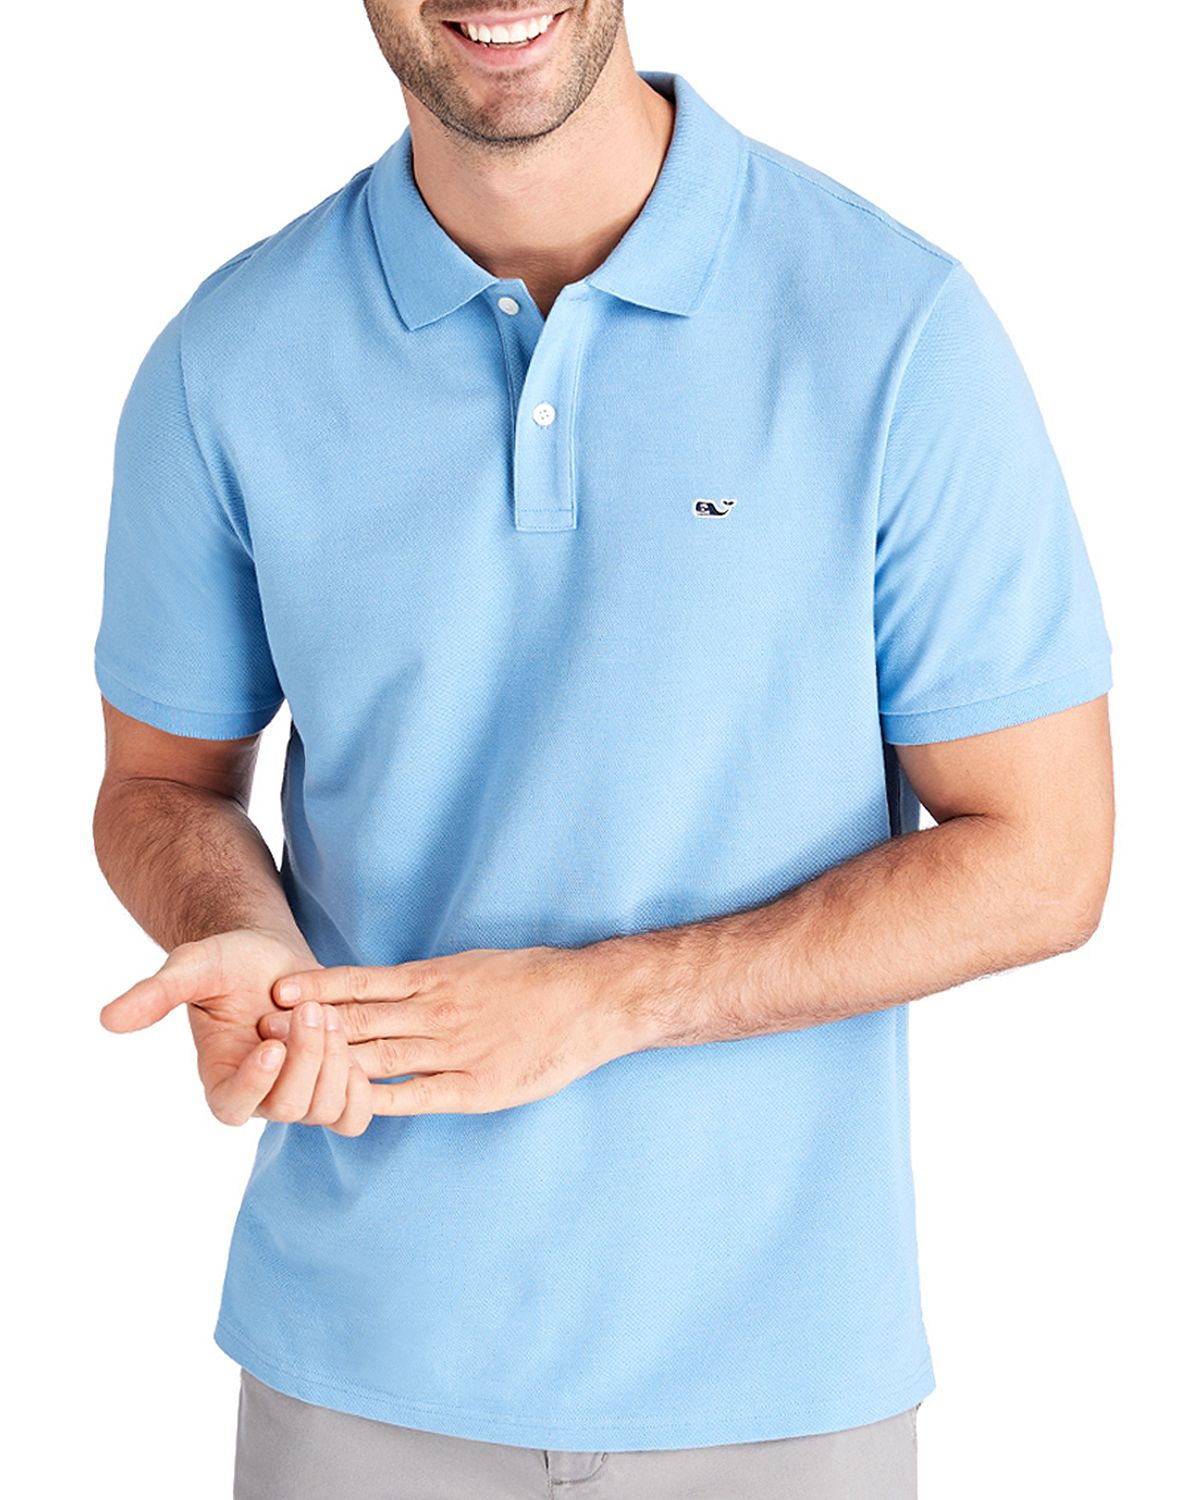 Vineyard Vines Stretch Piqu Classic Fit Polo Shirt Coastline